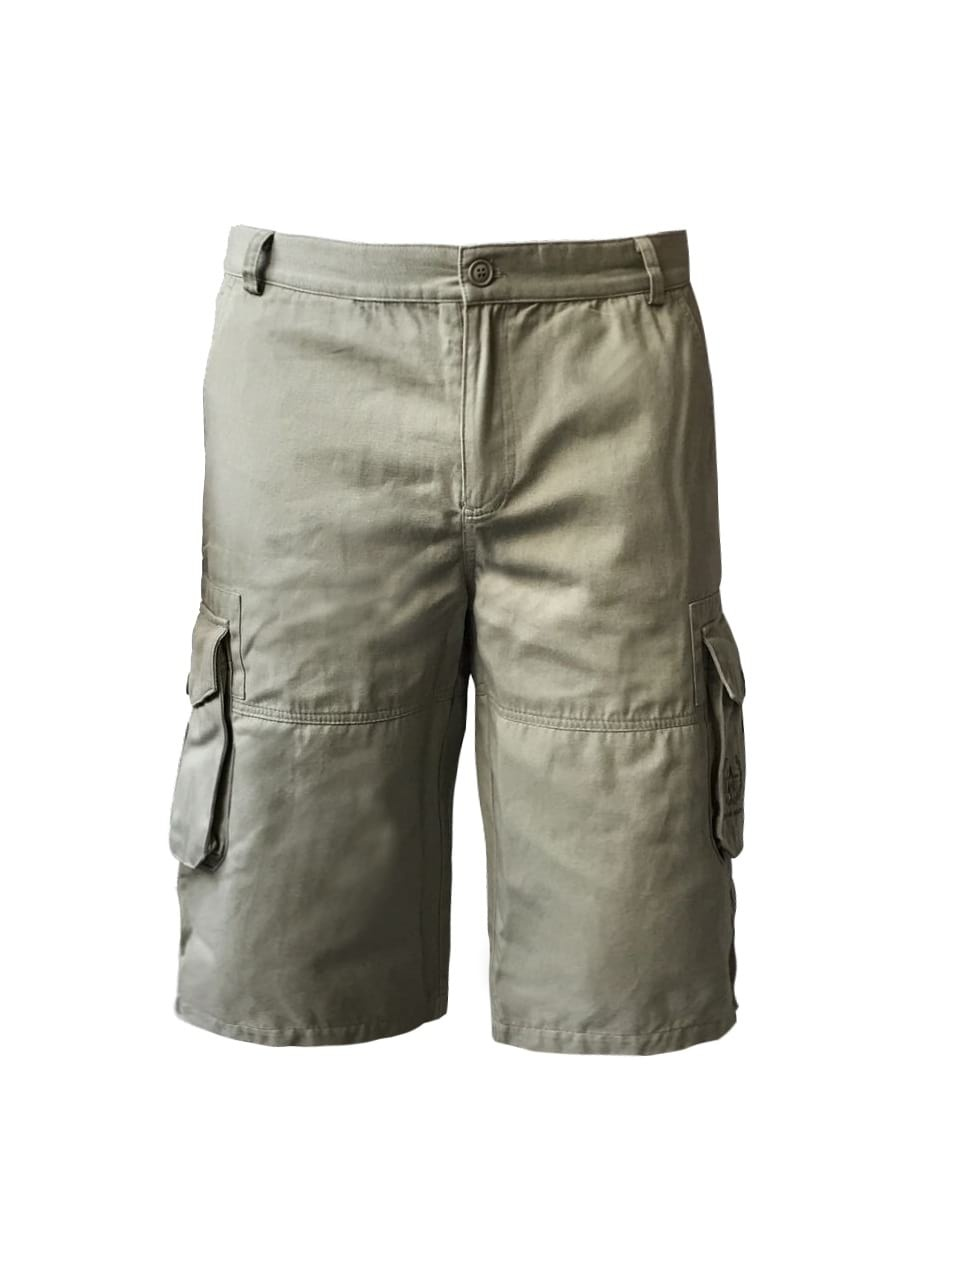 "Shorts ""Syrian Collection""Джинсы/Брюки<br>Straight cut shorts, below the knees length, side pockets and Russian Army logo.<br><br>Цвет: Светло-оливковый<br>Размер: 2XL<br>Пол: Мужчинам"